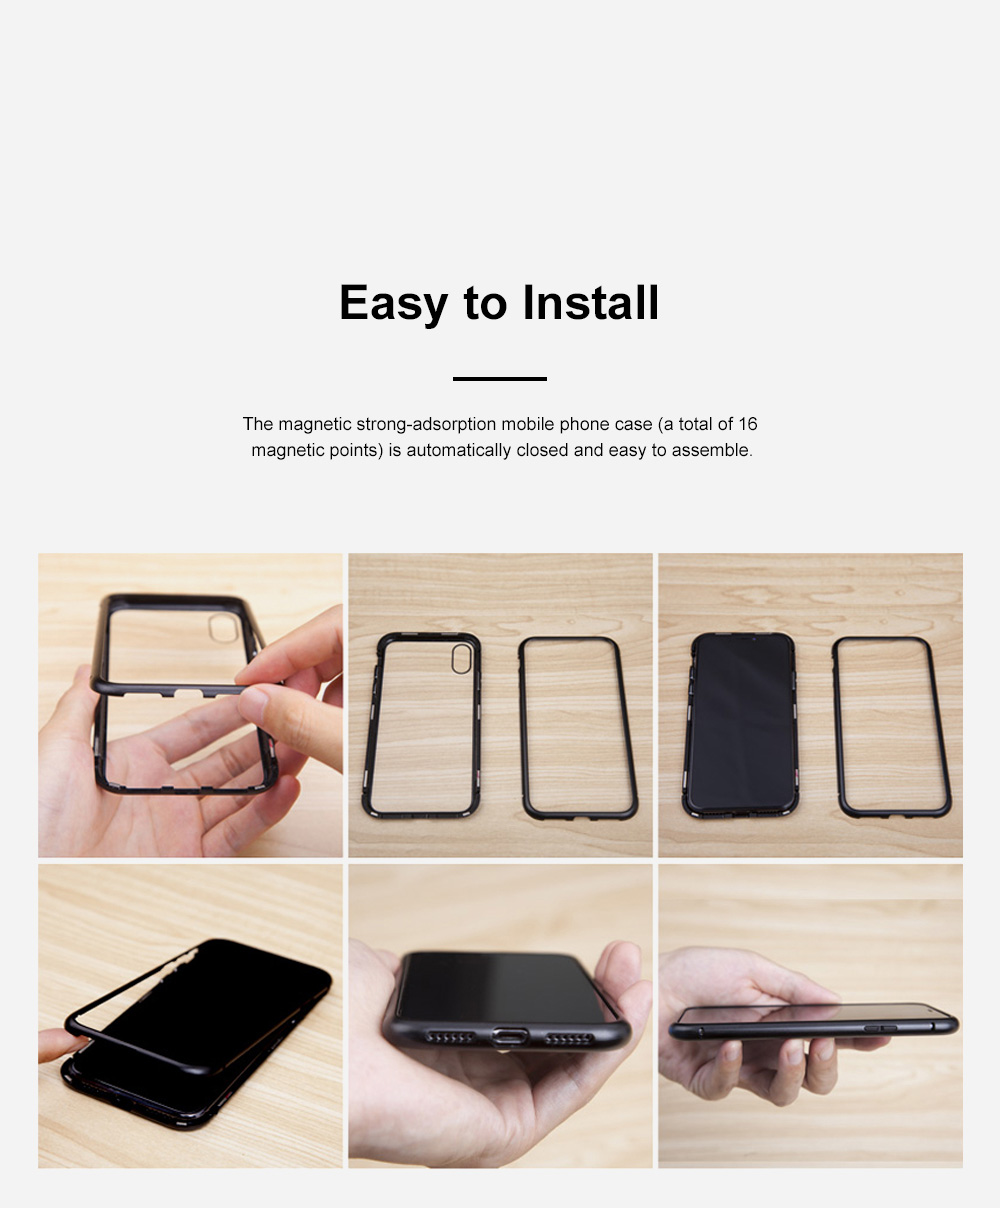 Magnetic Adsorption Phone Case Double-Sided Tempered Glass Protection Shell Compatible for iPhone 6 7 8 11 XS Max & XS 5